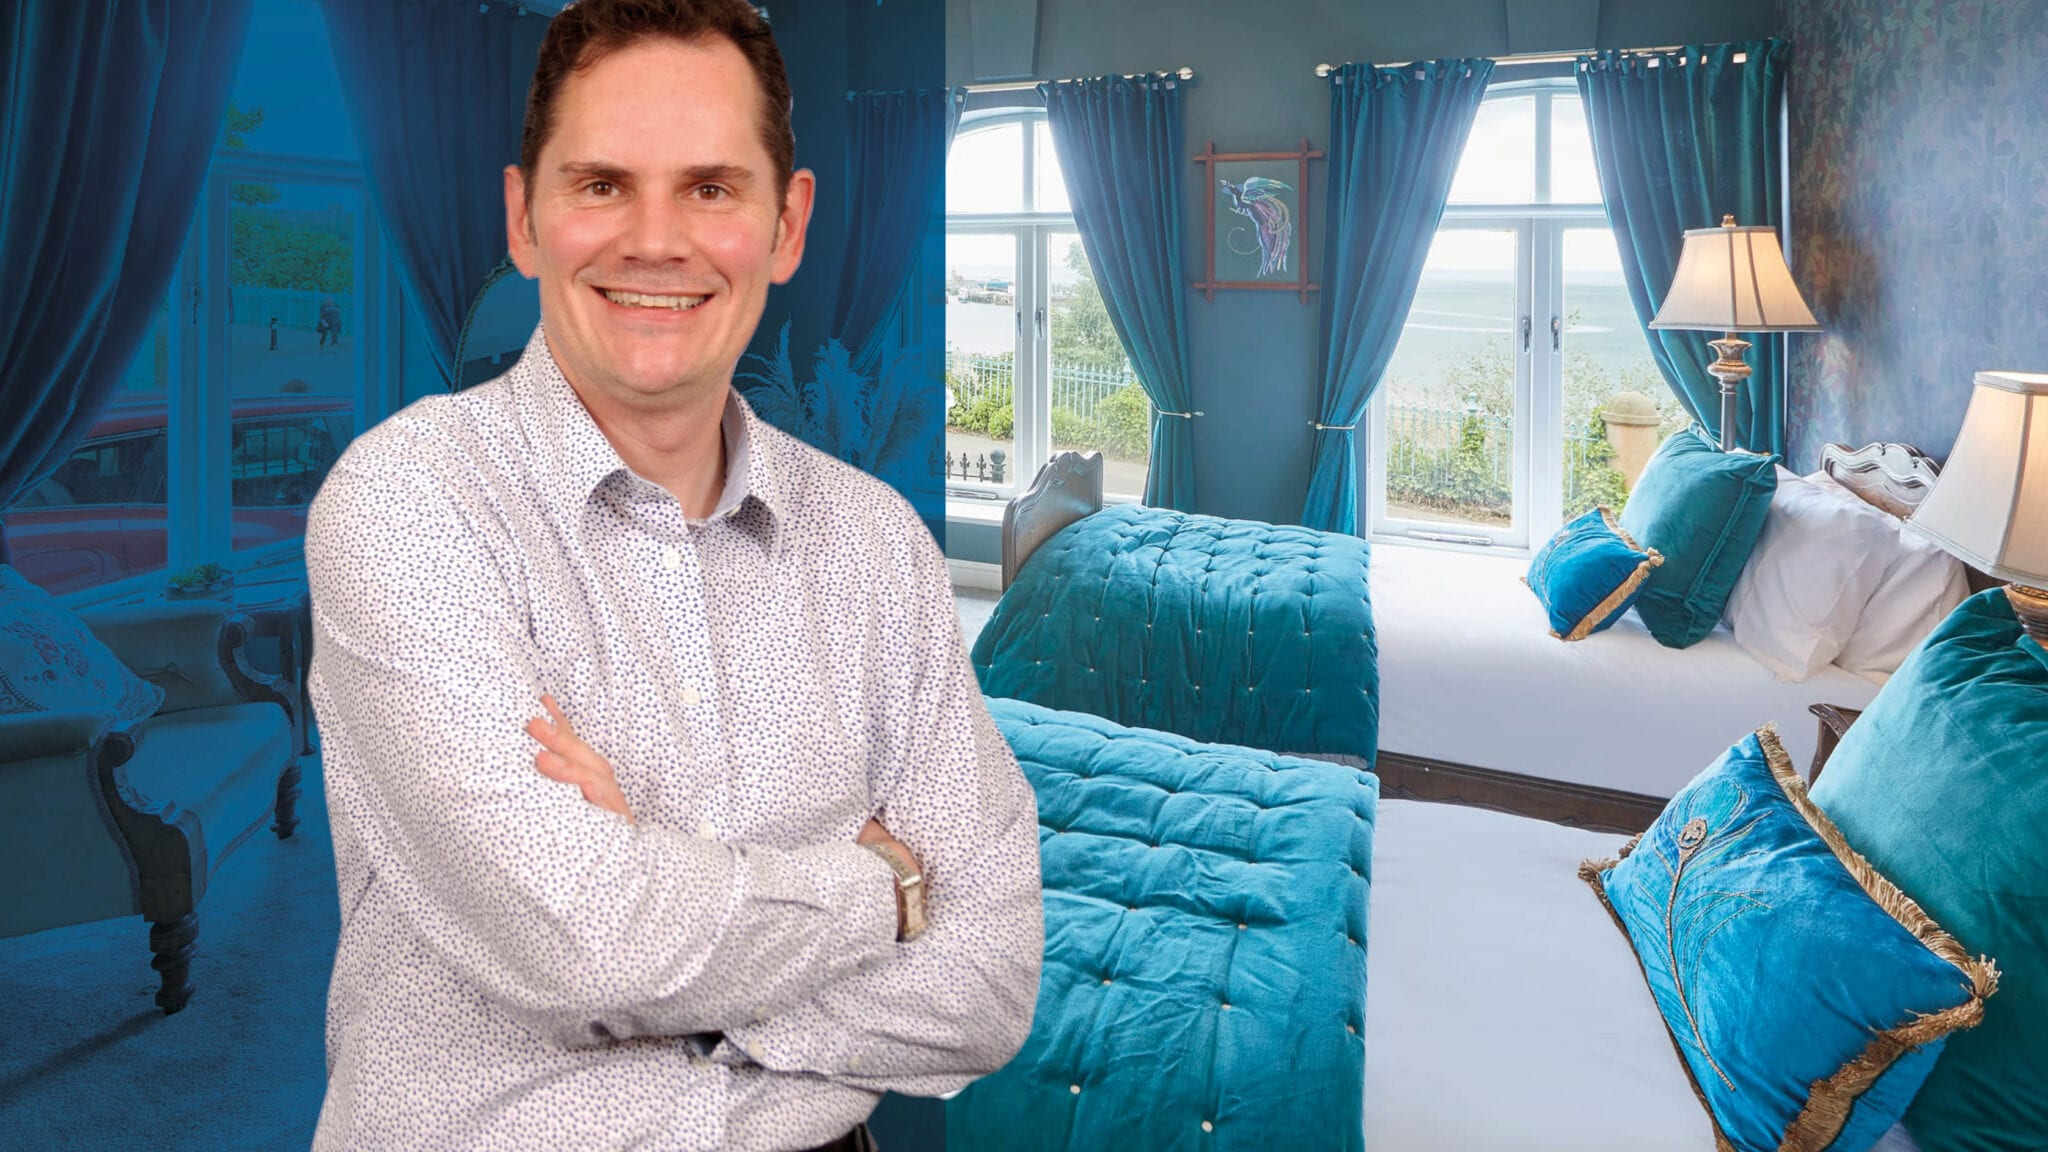 Regenex saves uSnooz.com a staggering 83.6% on its replacement linen costs